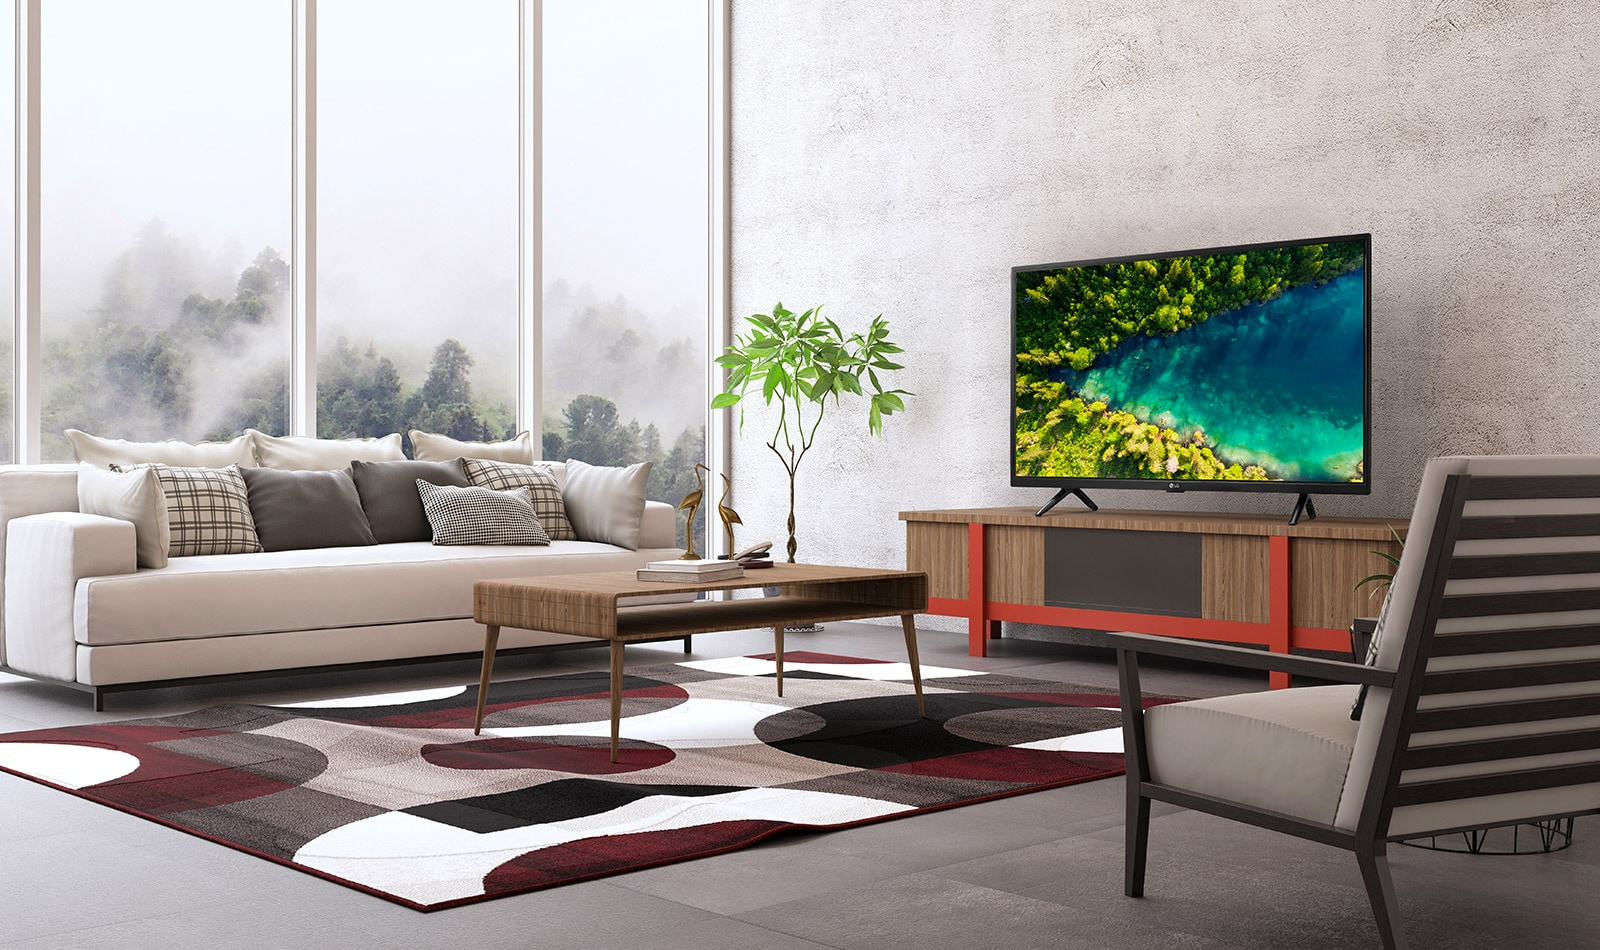 A TV that shows a river flowing in the dense forest of Top View from a modern and simple house setting.